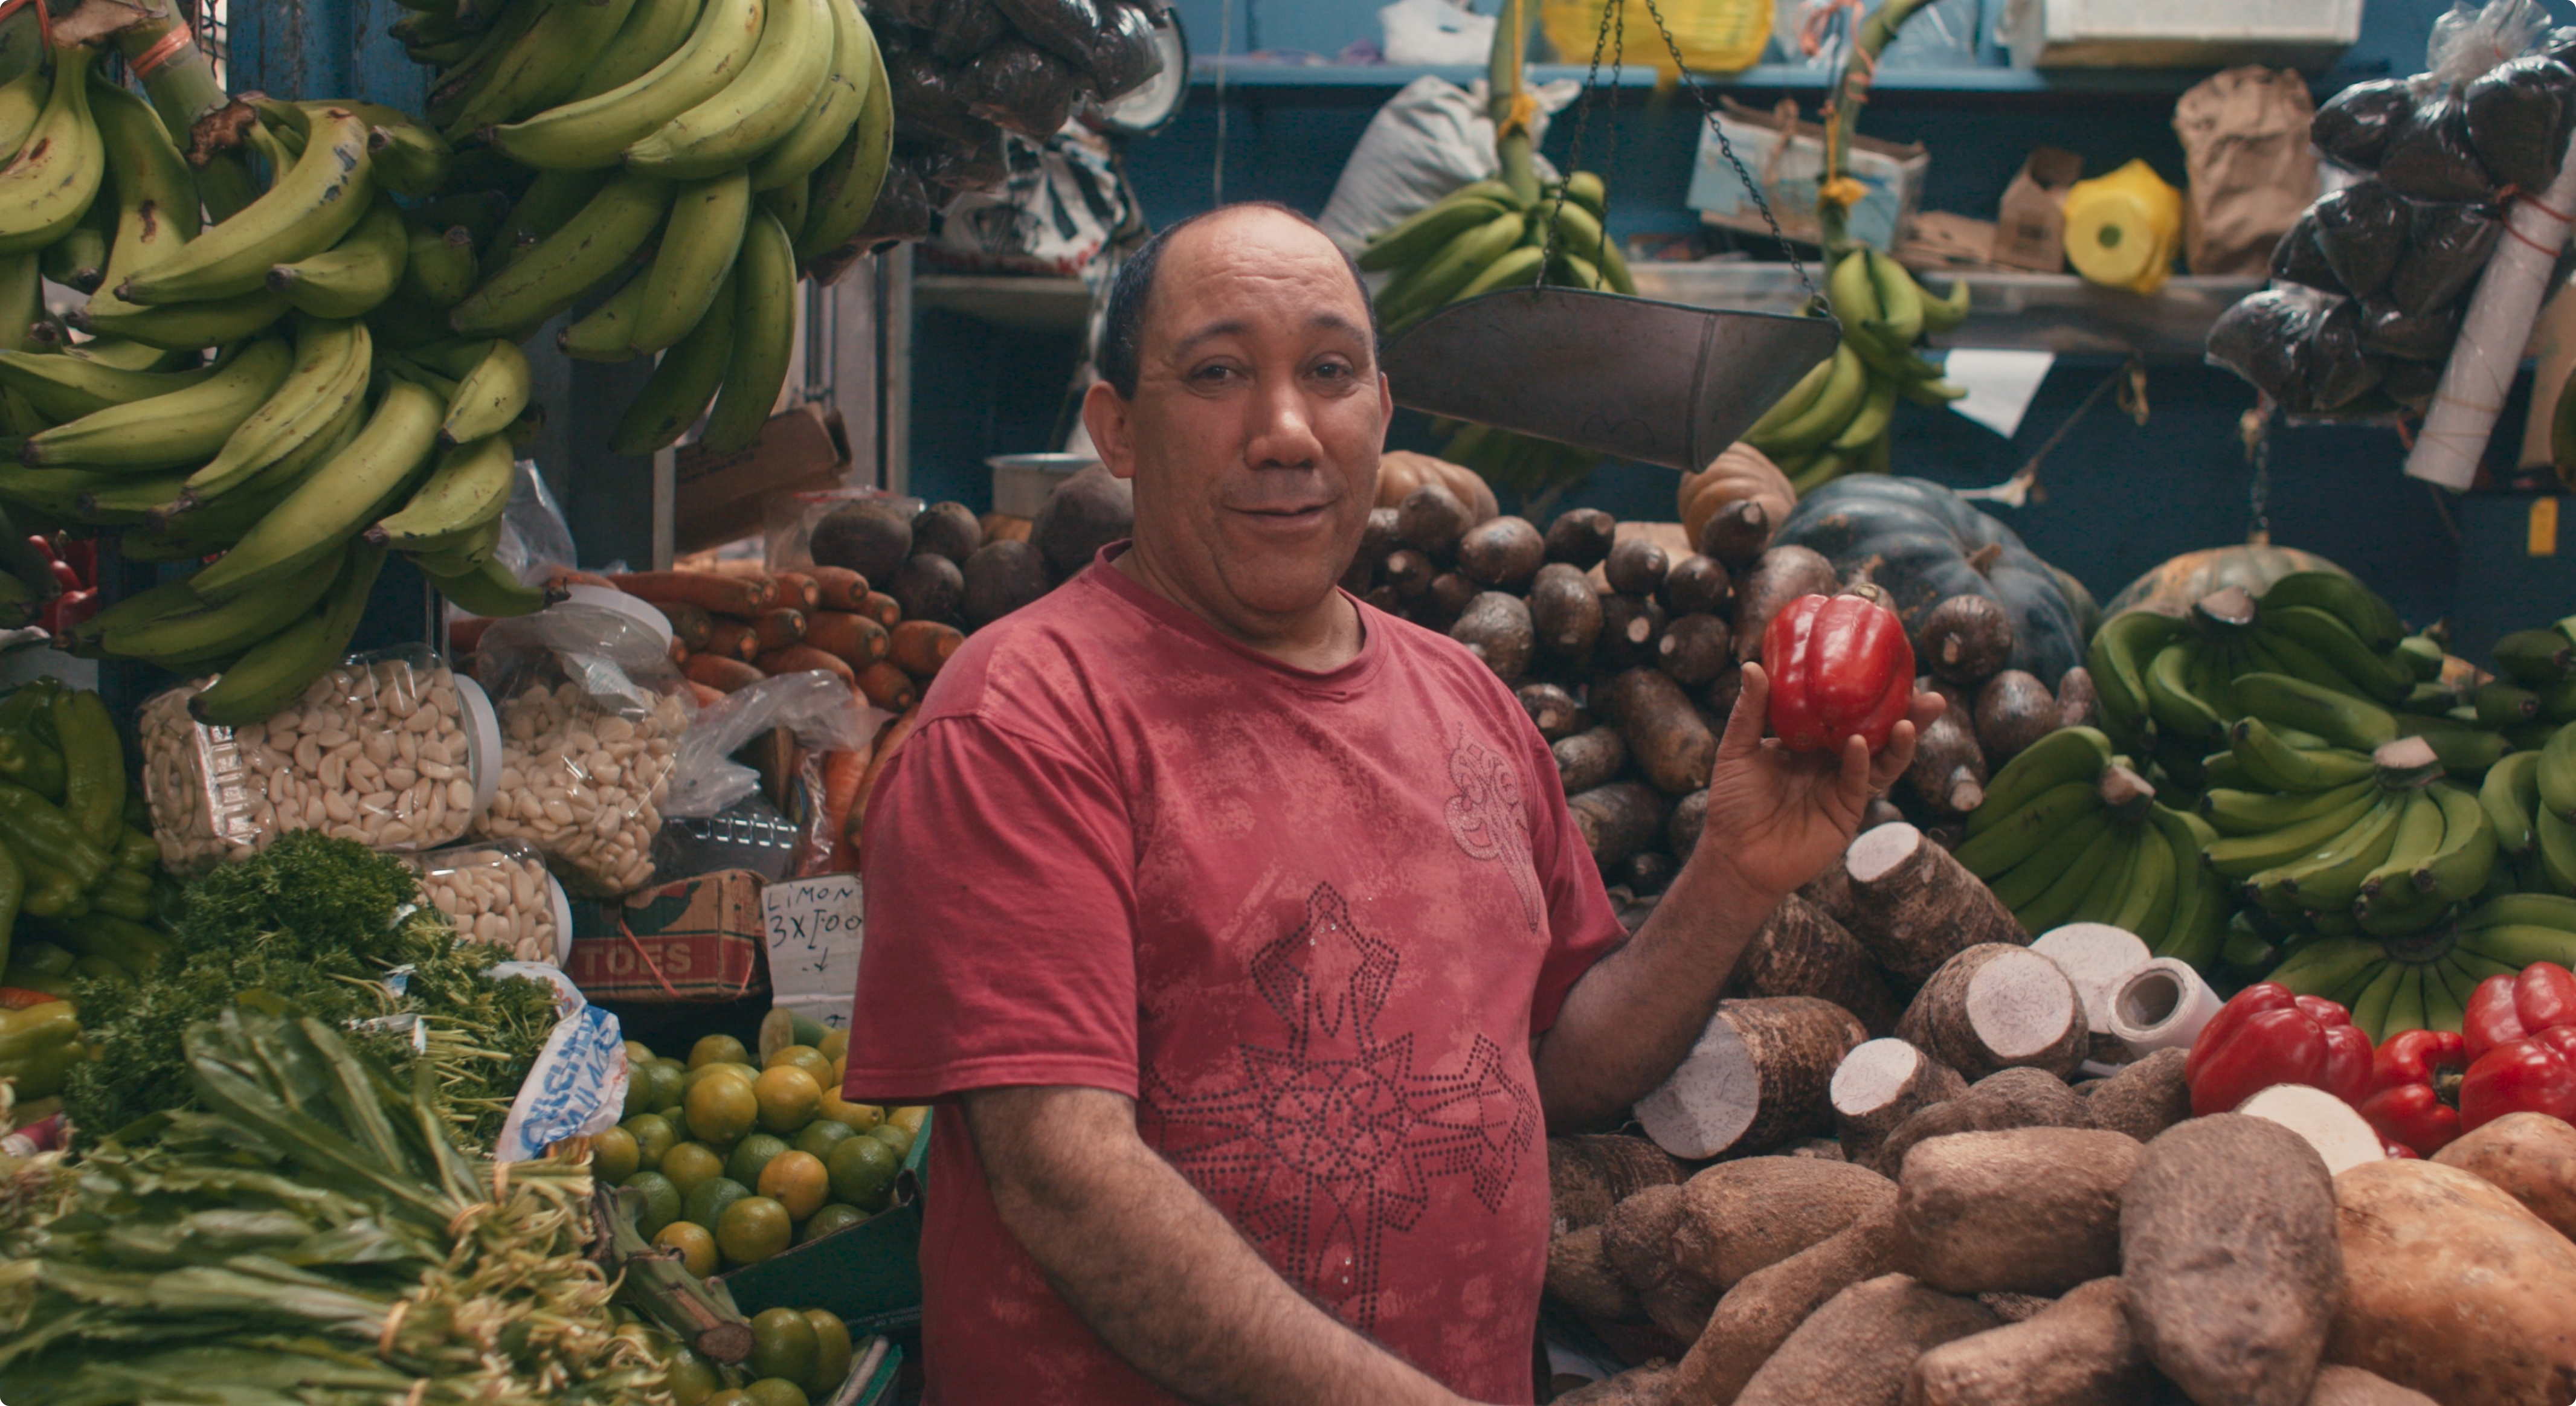 Puerto Rico resident at a market.